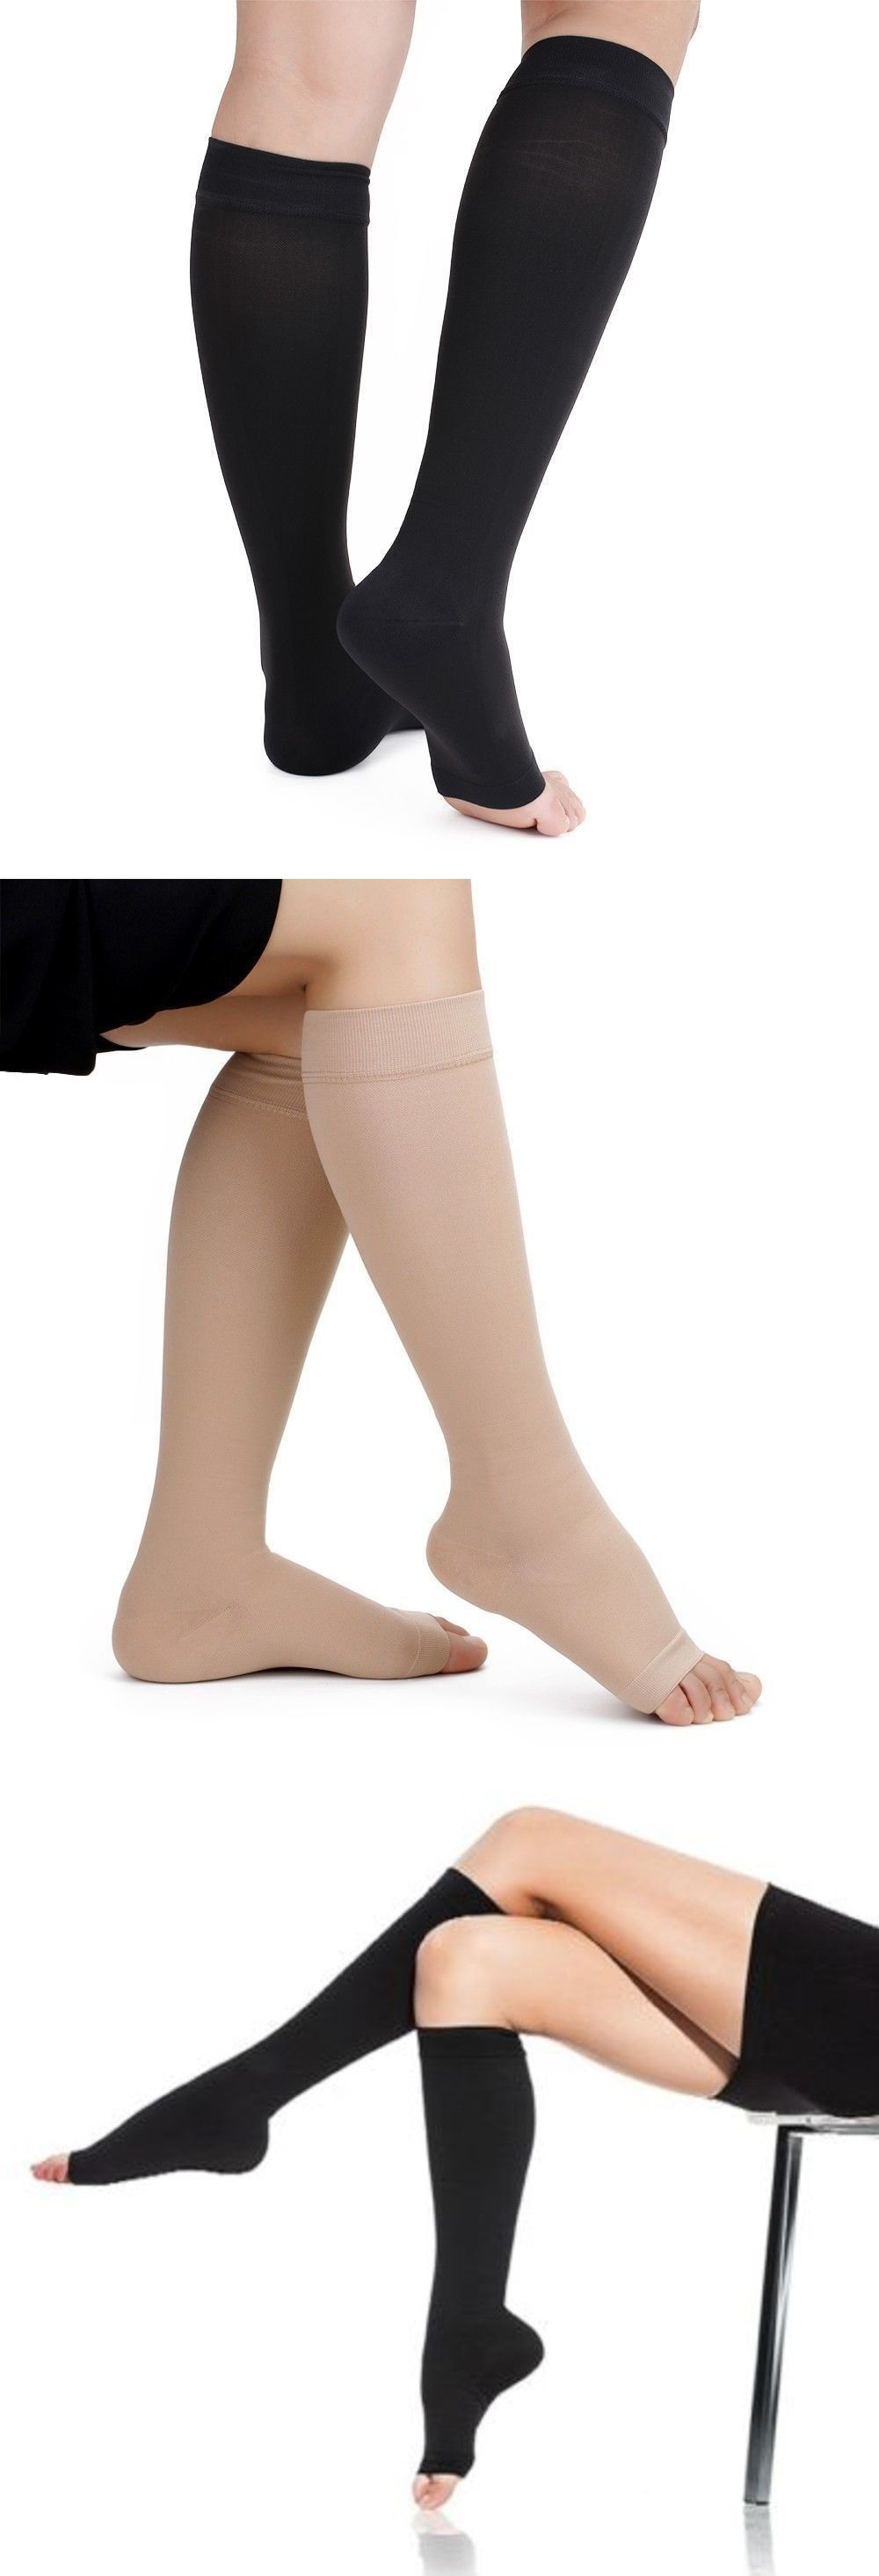 Feel It Work Form Fitting Naturally On Your Legs Thus Providing You Support Stretch Where Needed Whethe Compression Socks Support Stockings Slipper Sandals